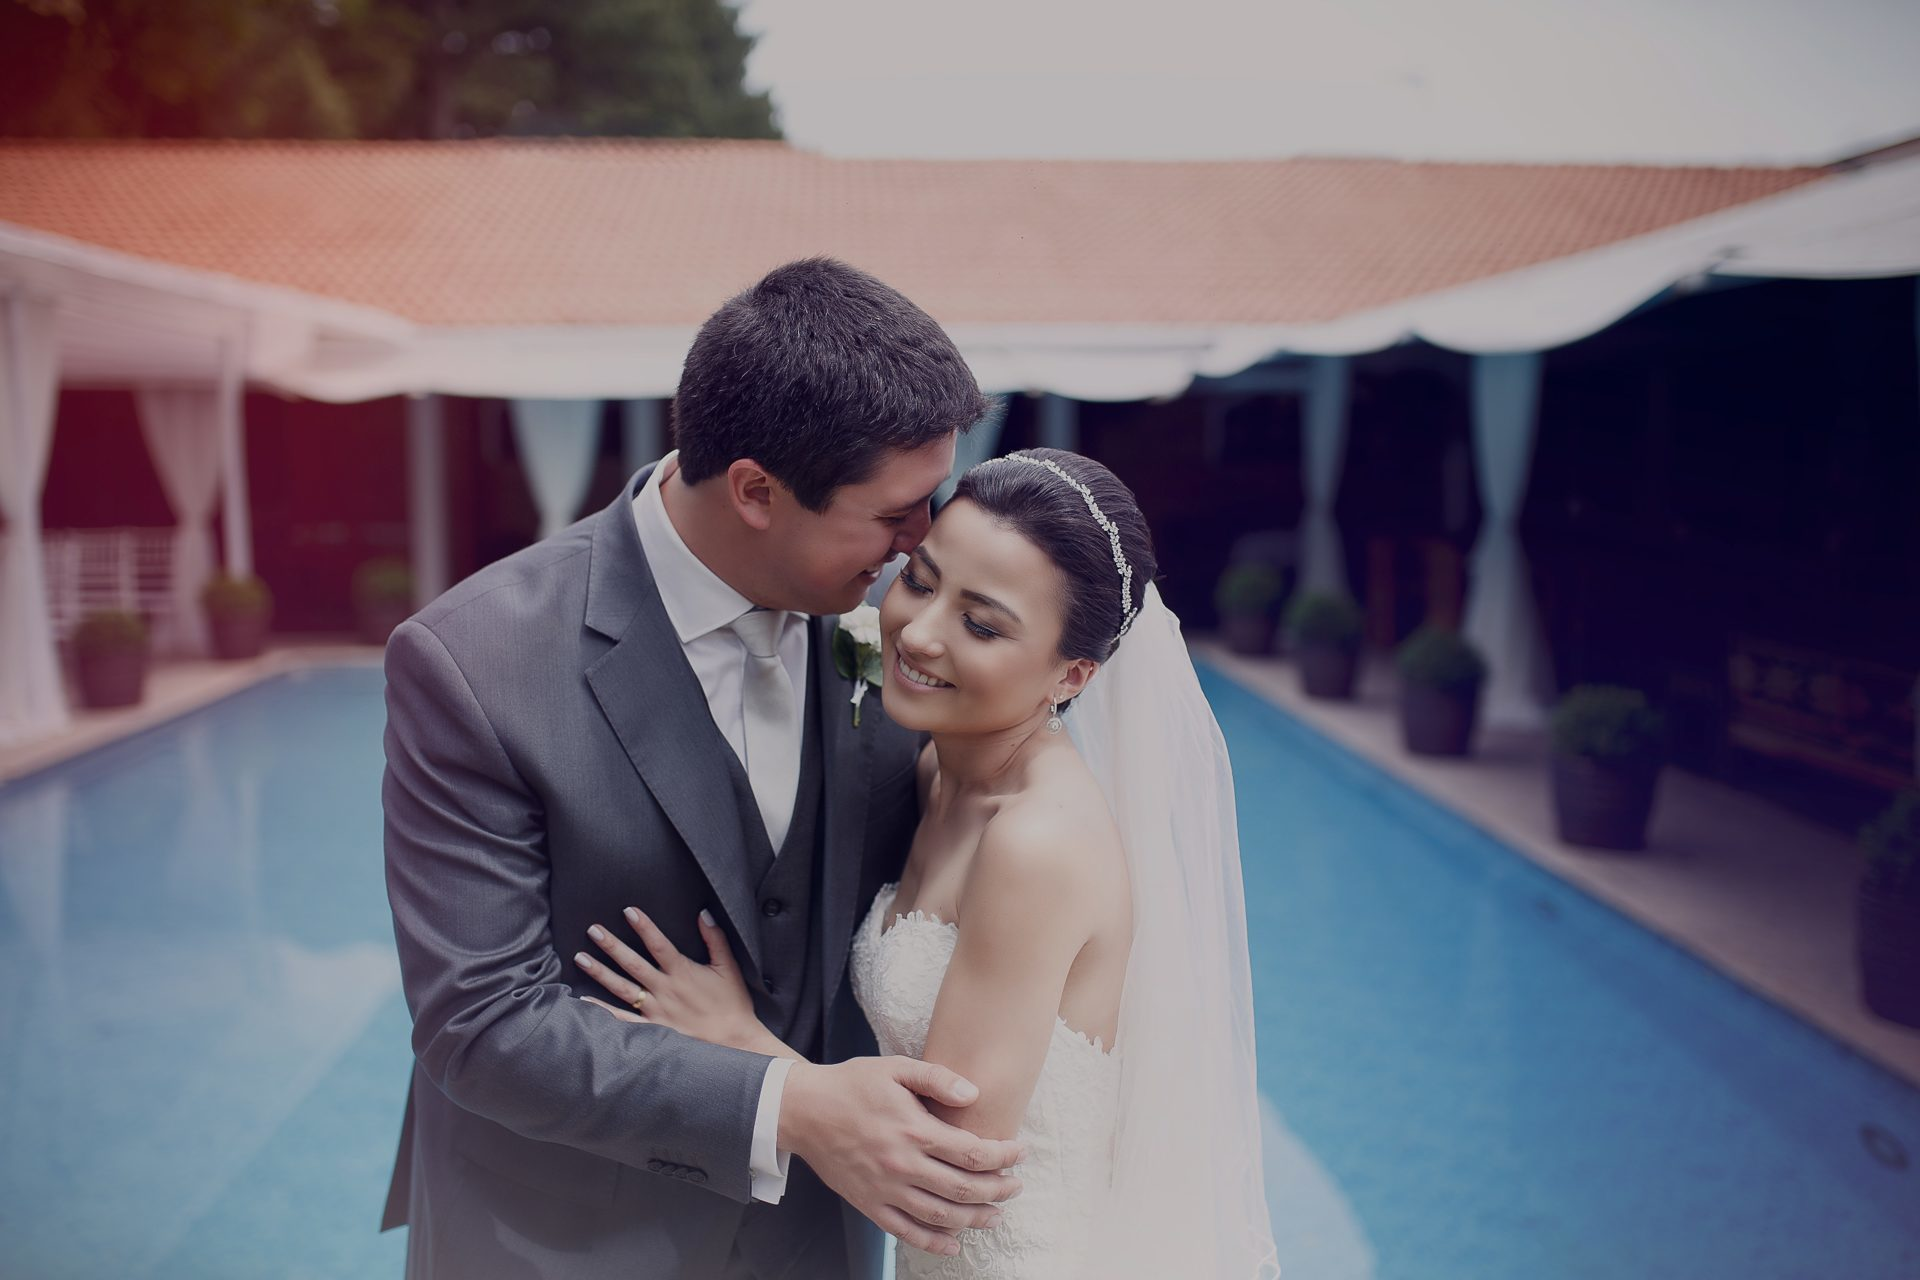 Fernanda + Samuel - Weddingday